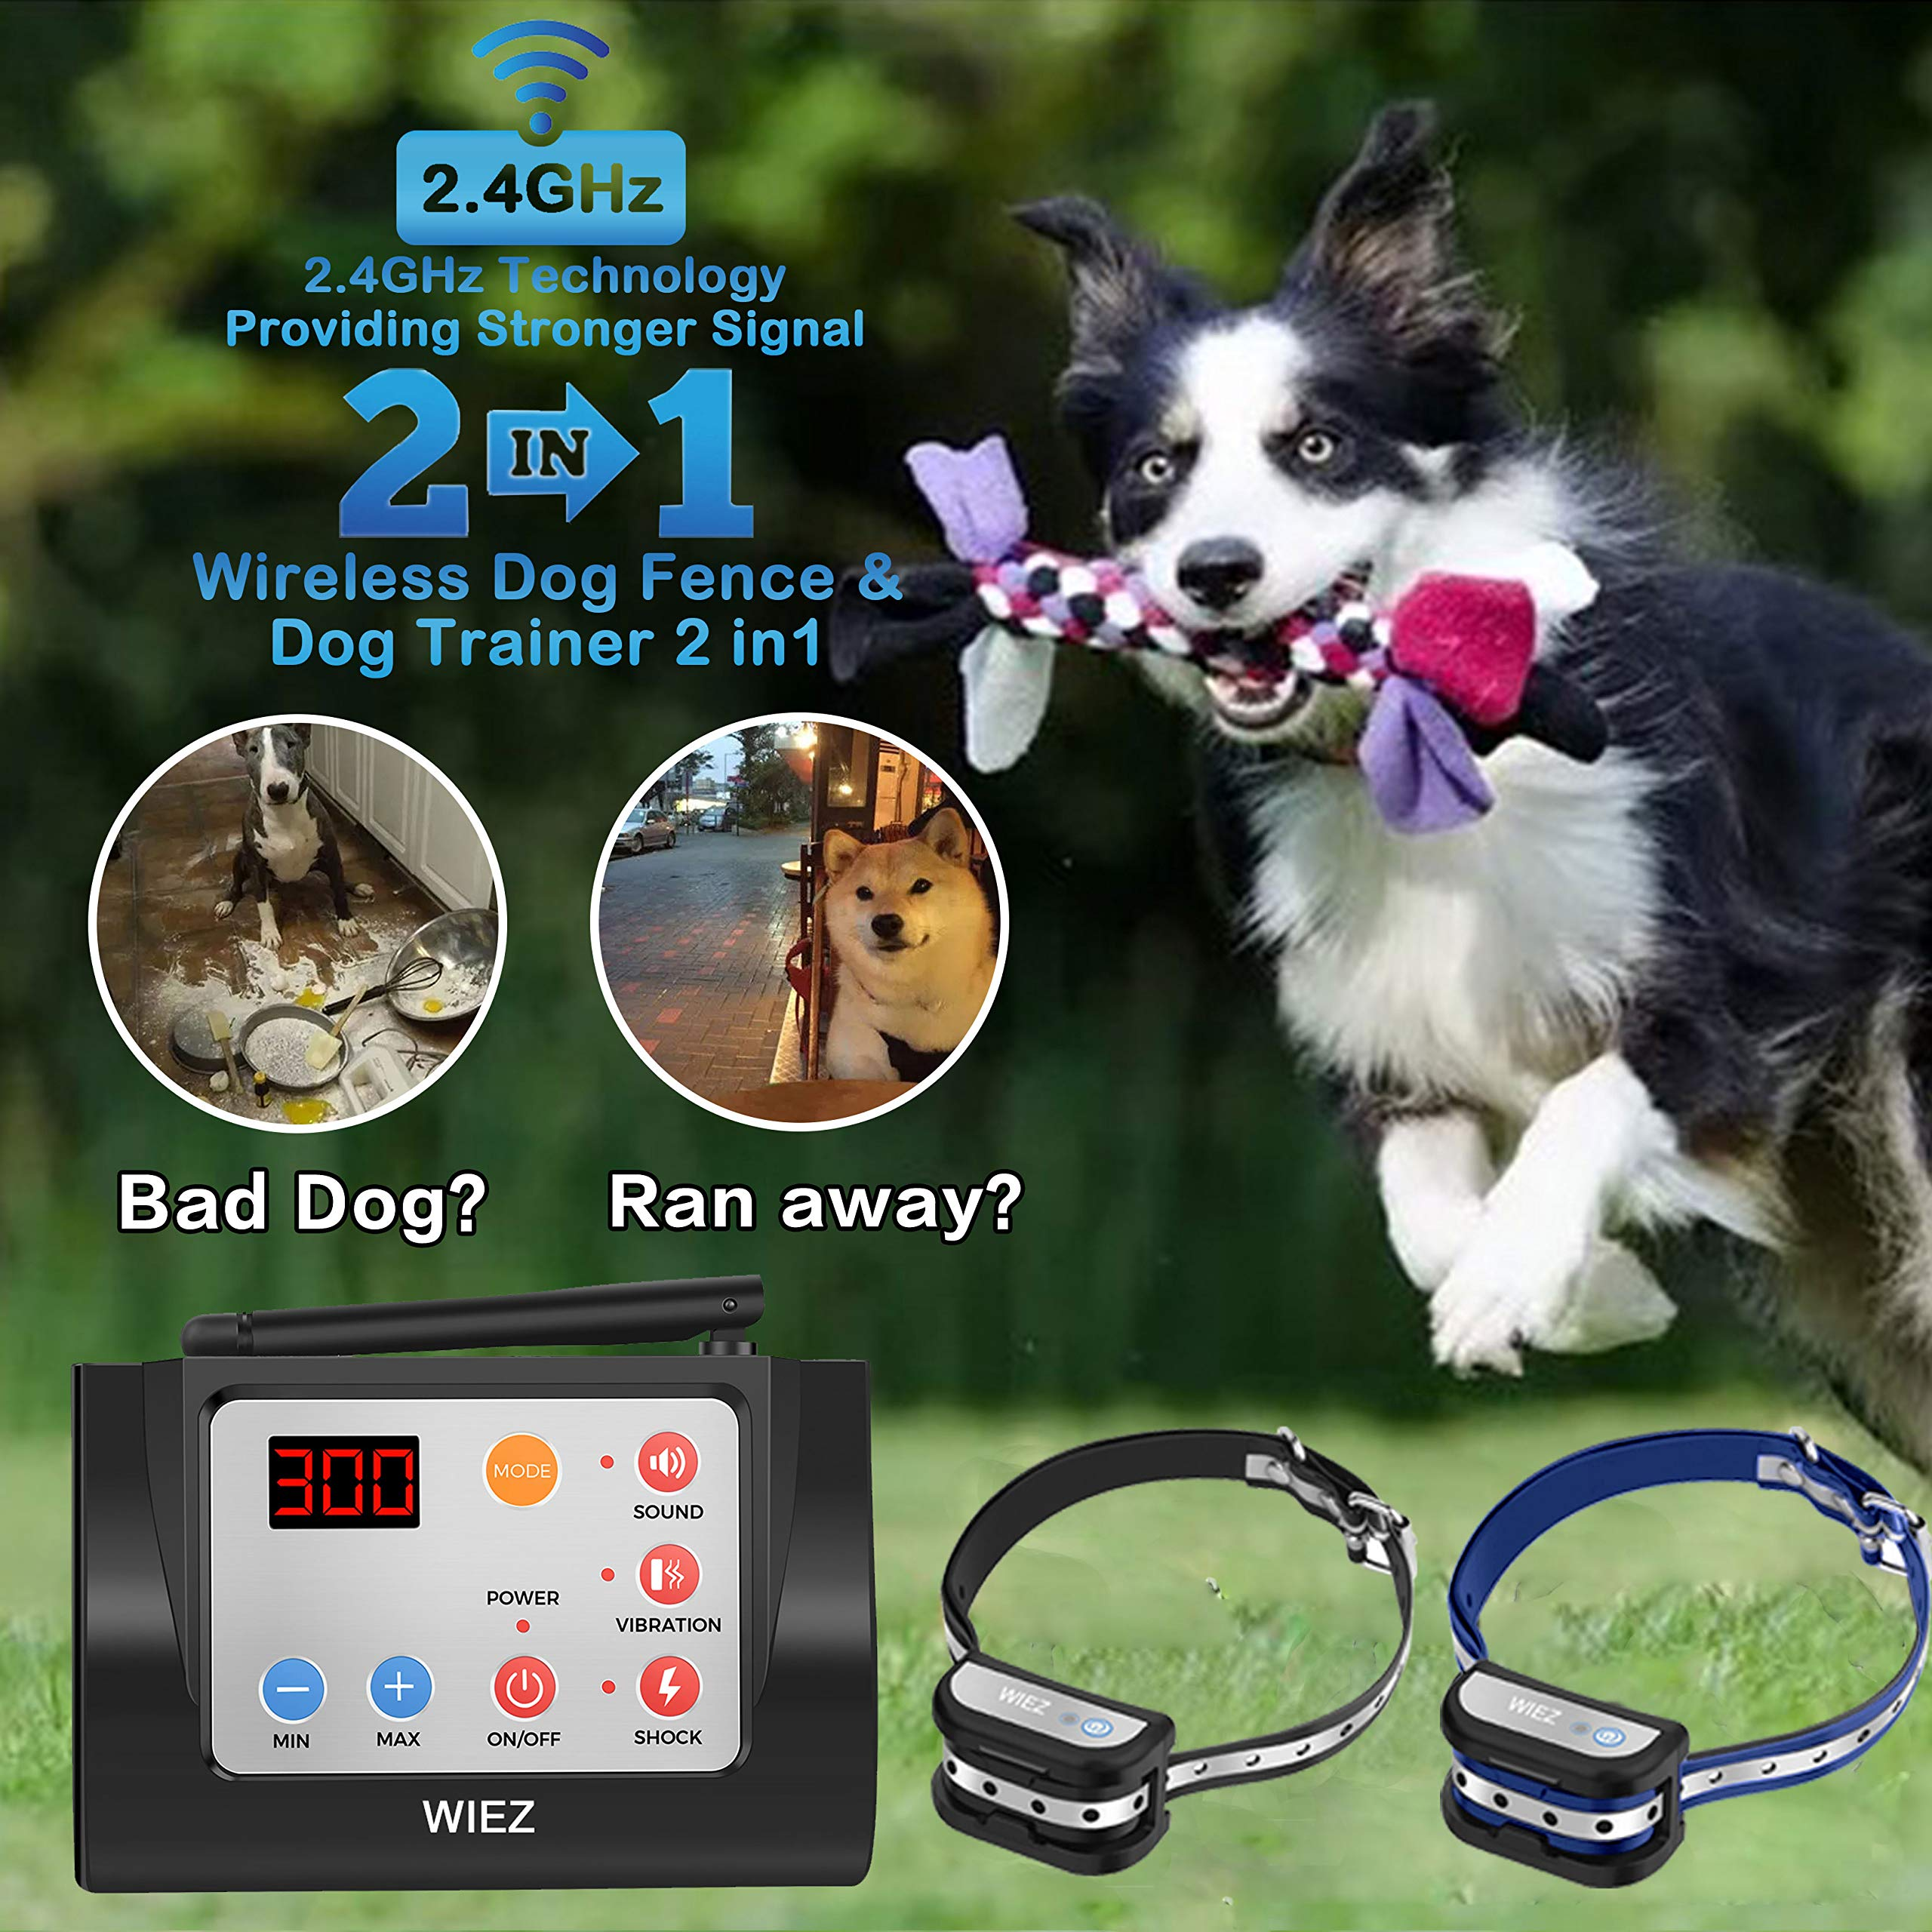 WIEZ Dog Fence Wireless & Training Collar Outdoor 2-in-1, Electric Invisible Wireless Fence w/Remote, Adjustable Range, Waterproof, Reflective Stripe, Harmless for All Dogs- 2 Collars by WIEZ